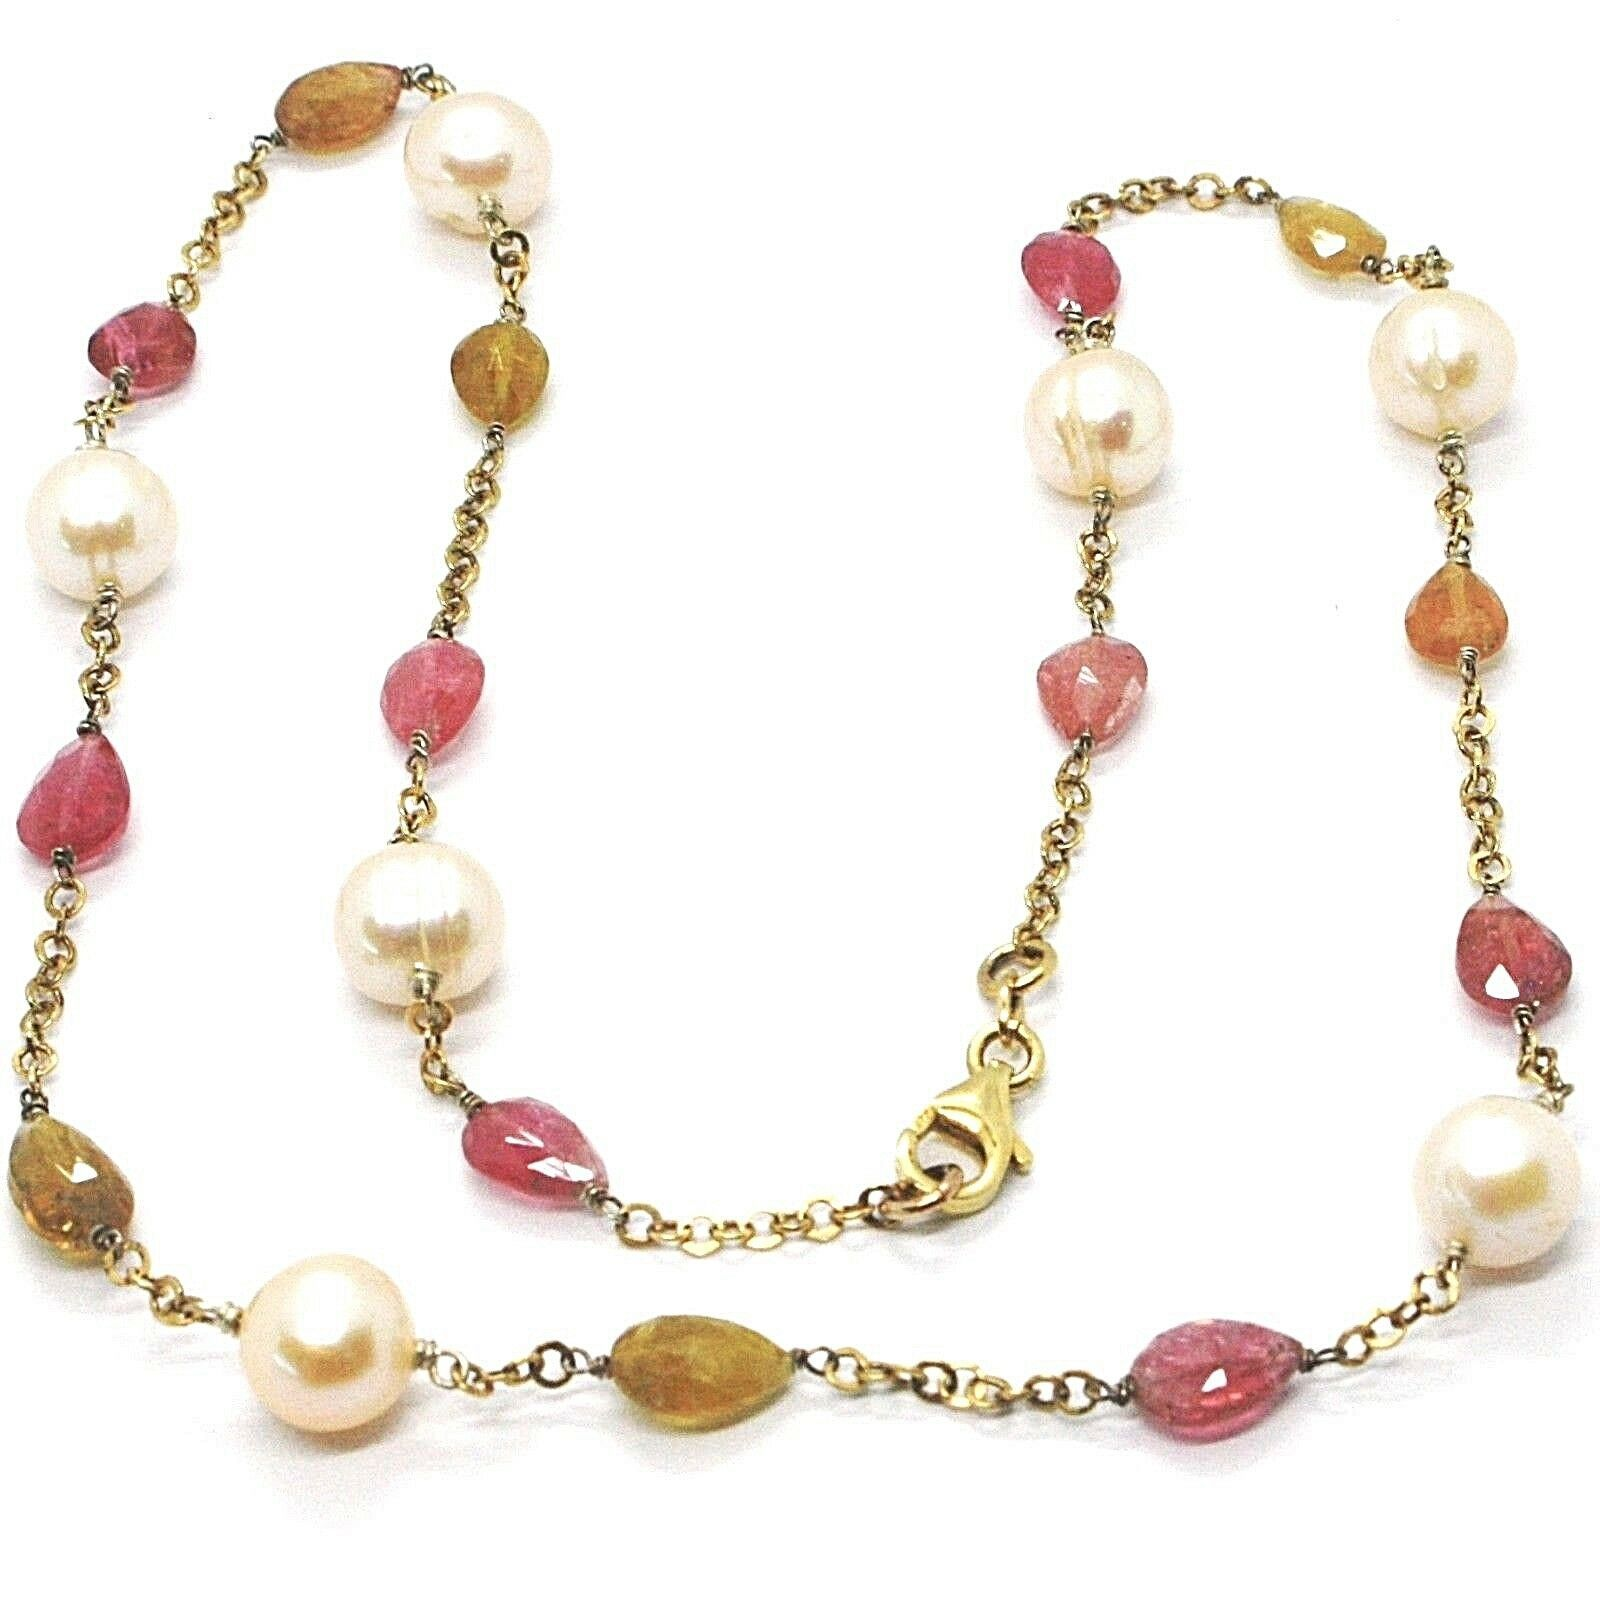 Silver 925 Necklace, Yellow, Tourmaline Drop, Pearls round, Chain Rolo '